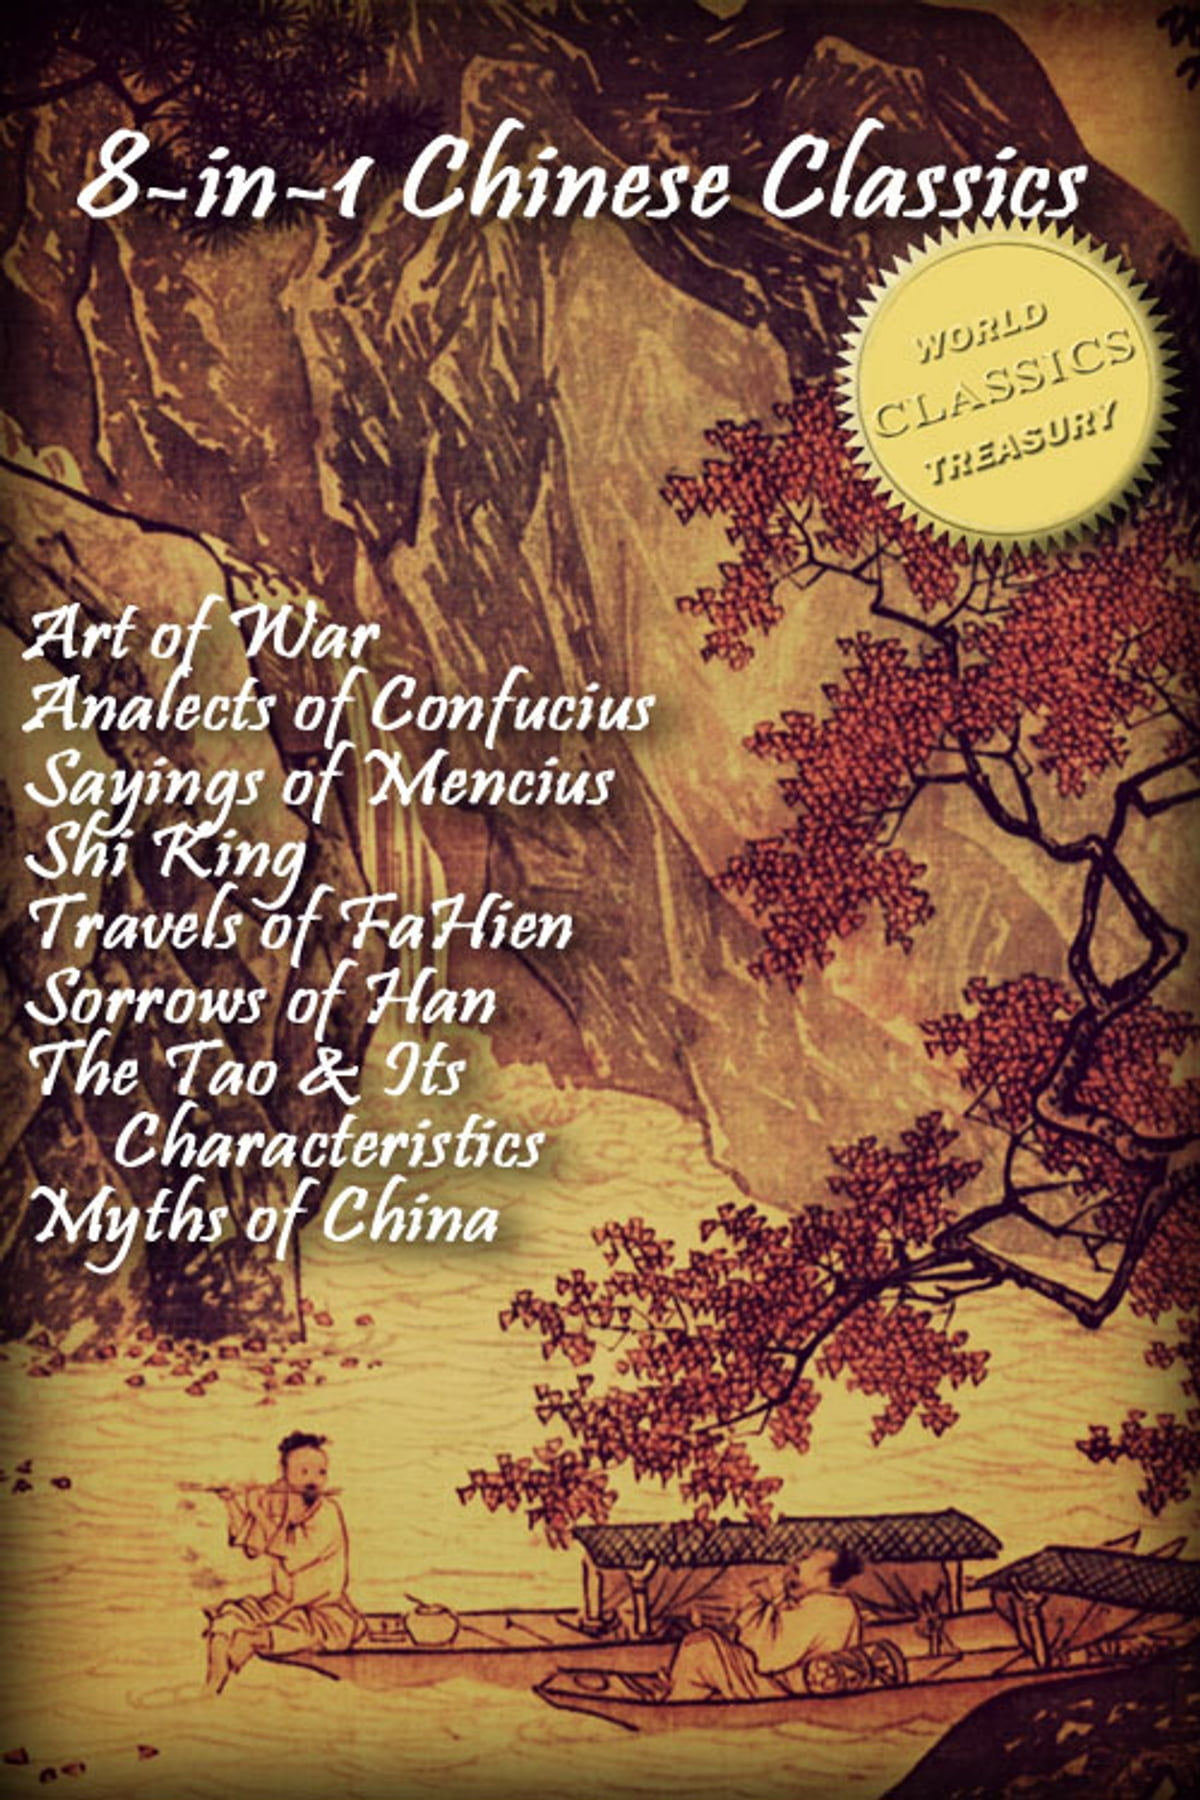 in chinese classics art of war analects of confucius 8 in 1 chinese classics art of war analects of confucius sayings of mencius shi ching book of songs travels of fahien sorrows of han tao te ching